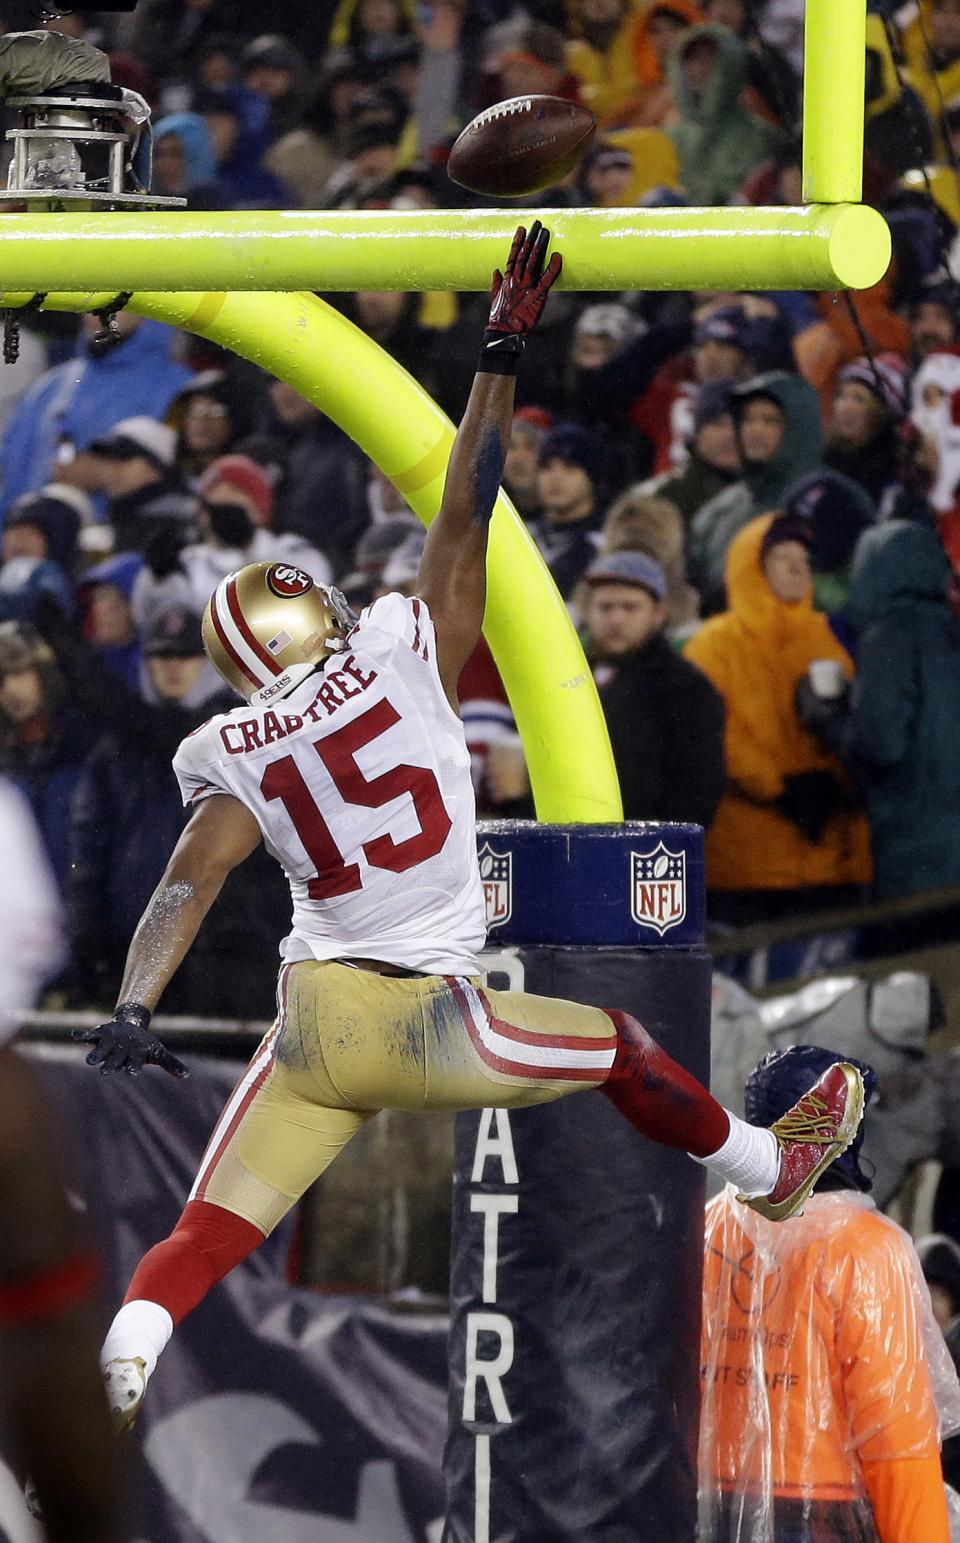 San Francisco 49ers wide receiver Michael Crabtree (15) spikes the ball over the goal post after scoring a touchdown against the New England Patriots in the third quarter of an NFL football game in Foxborough, Mass., Sunday, Dec. 16, 2012. (AP Photo/Elise Amendola)